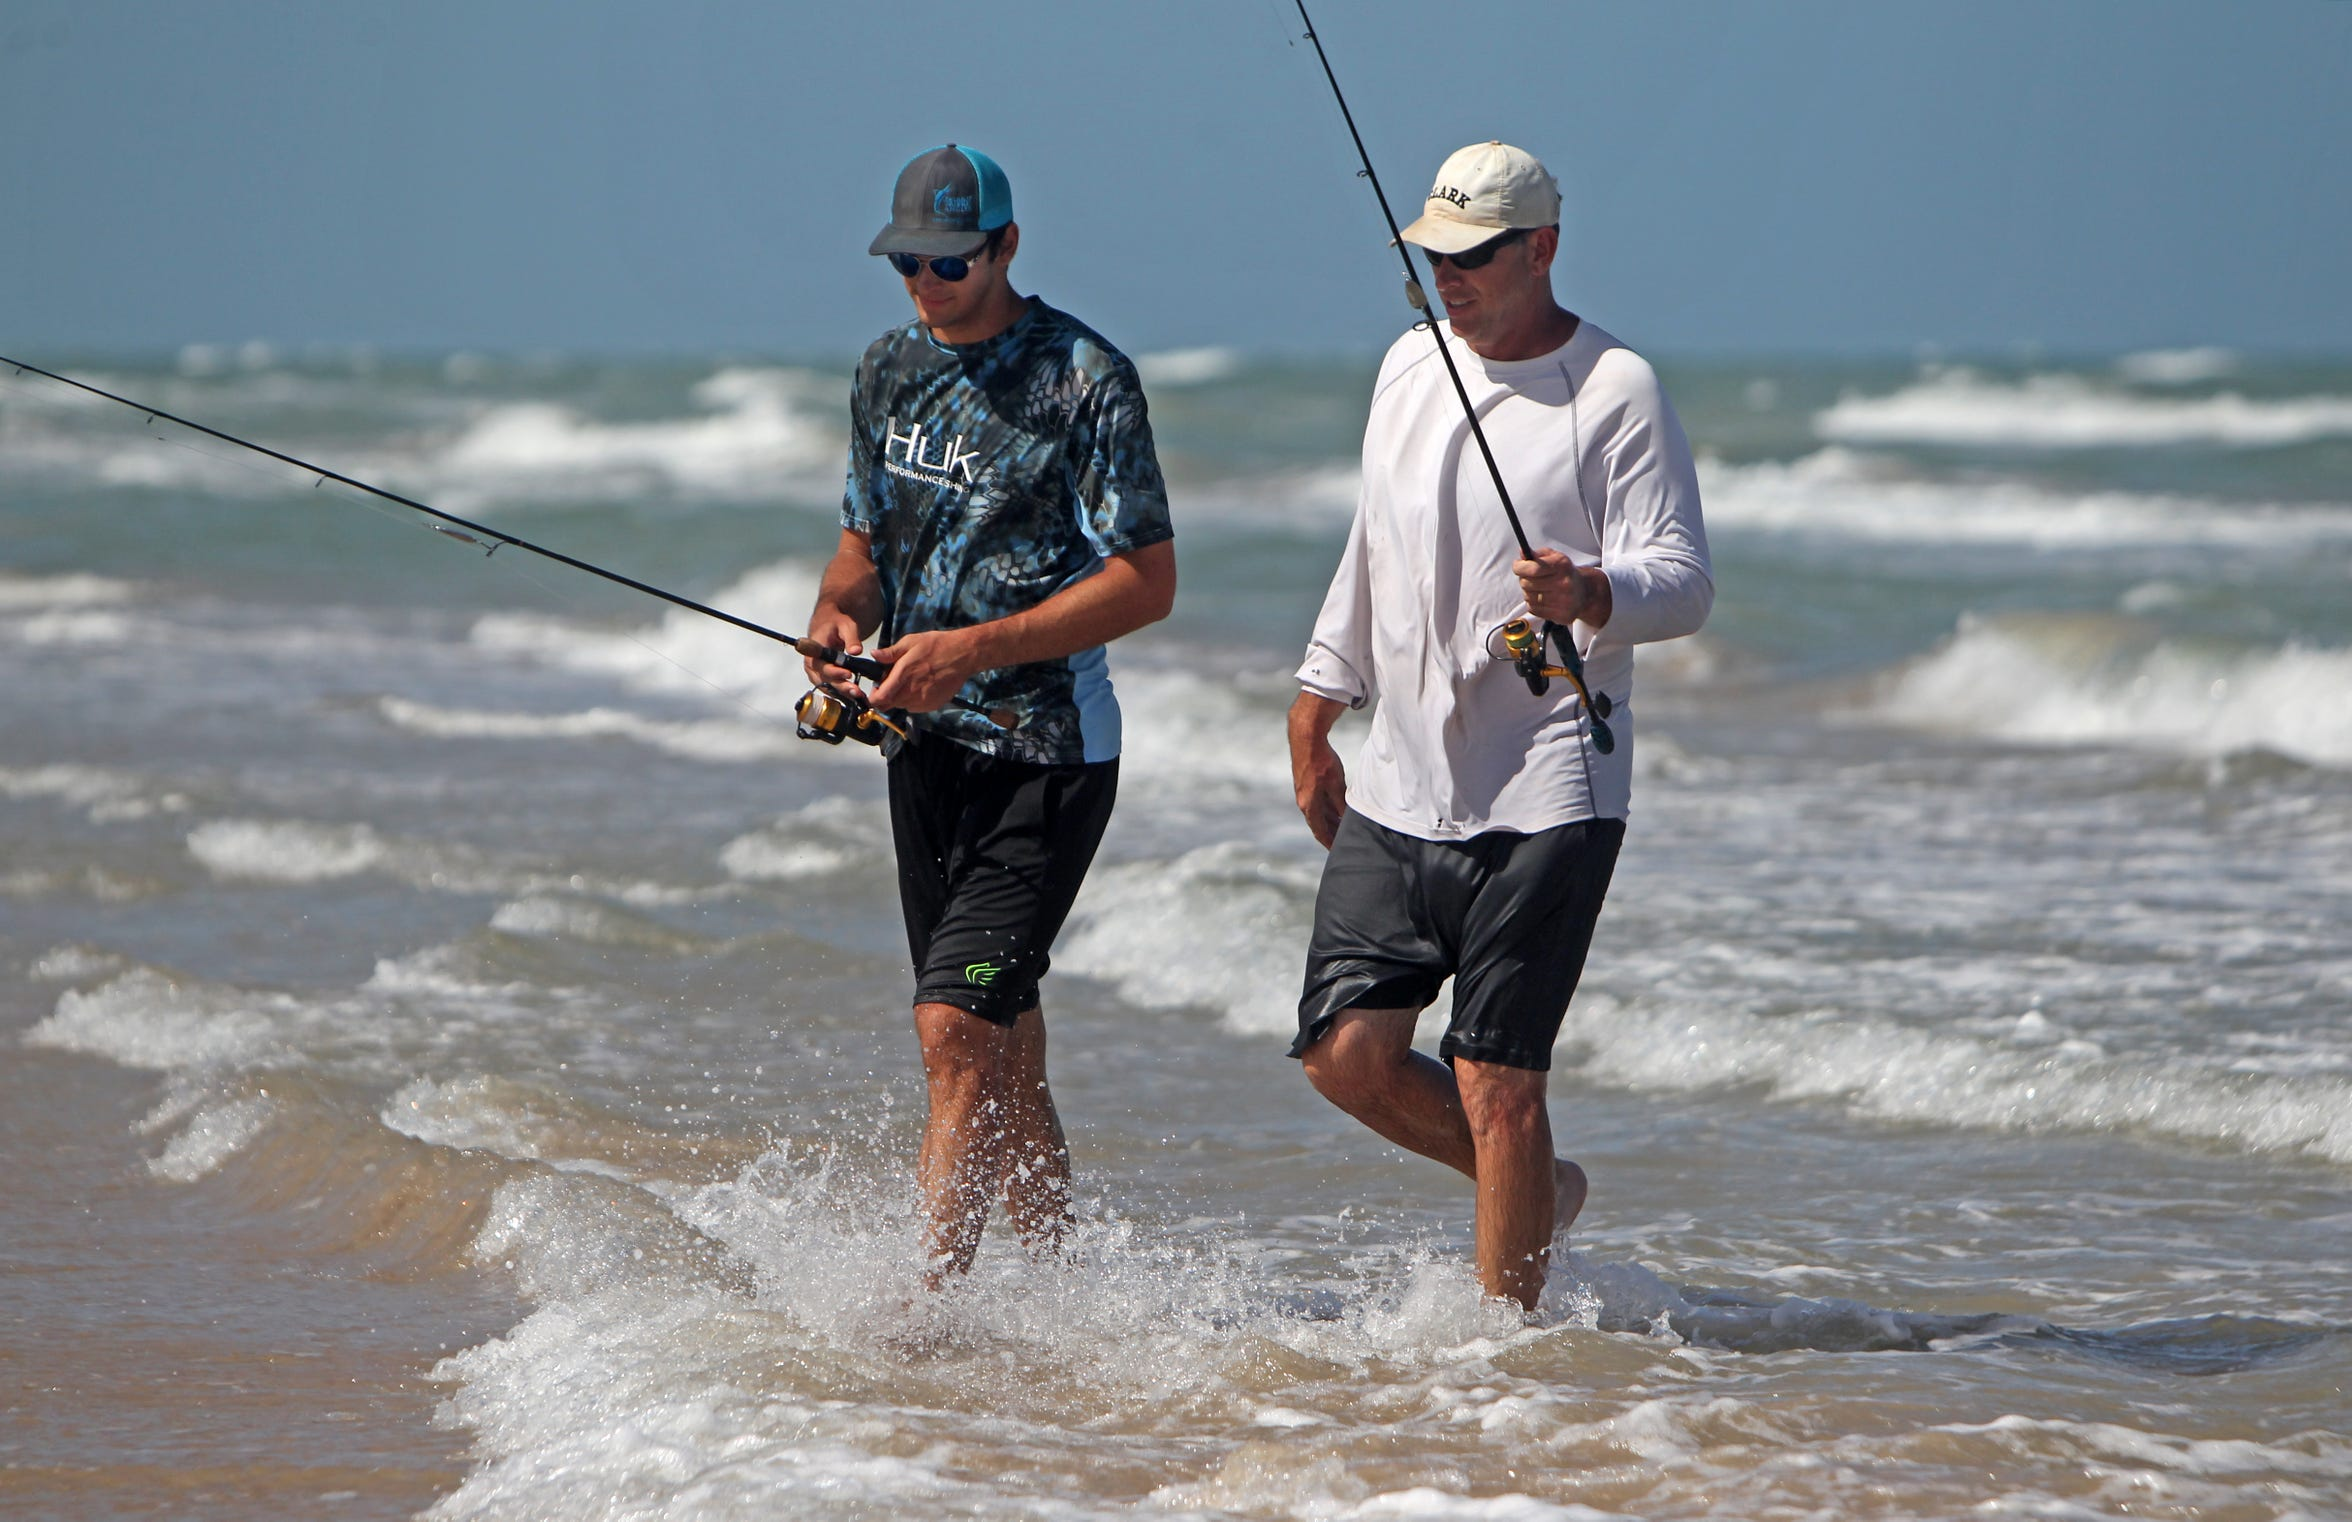 Steve and Luke McGhee began fishing on PINS when Luke was a senior in high school.